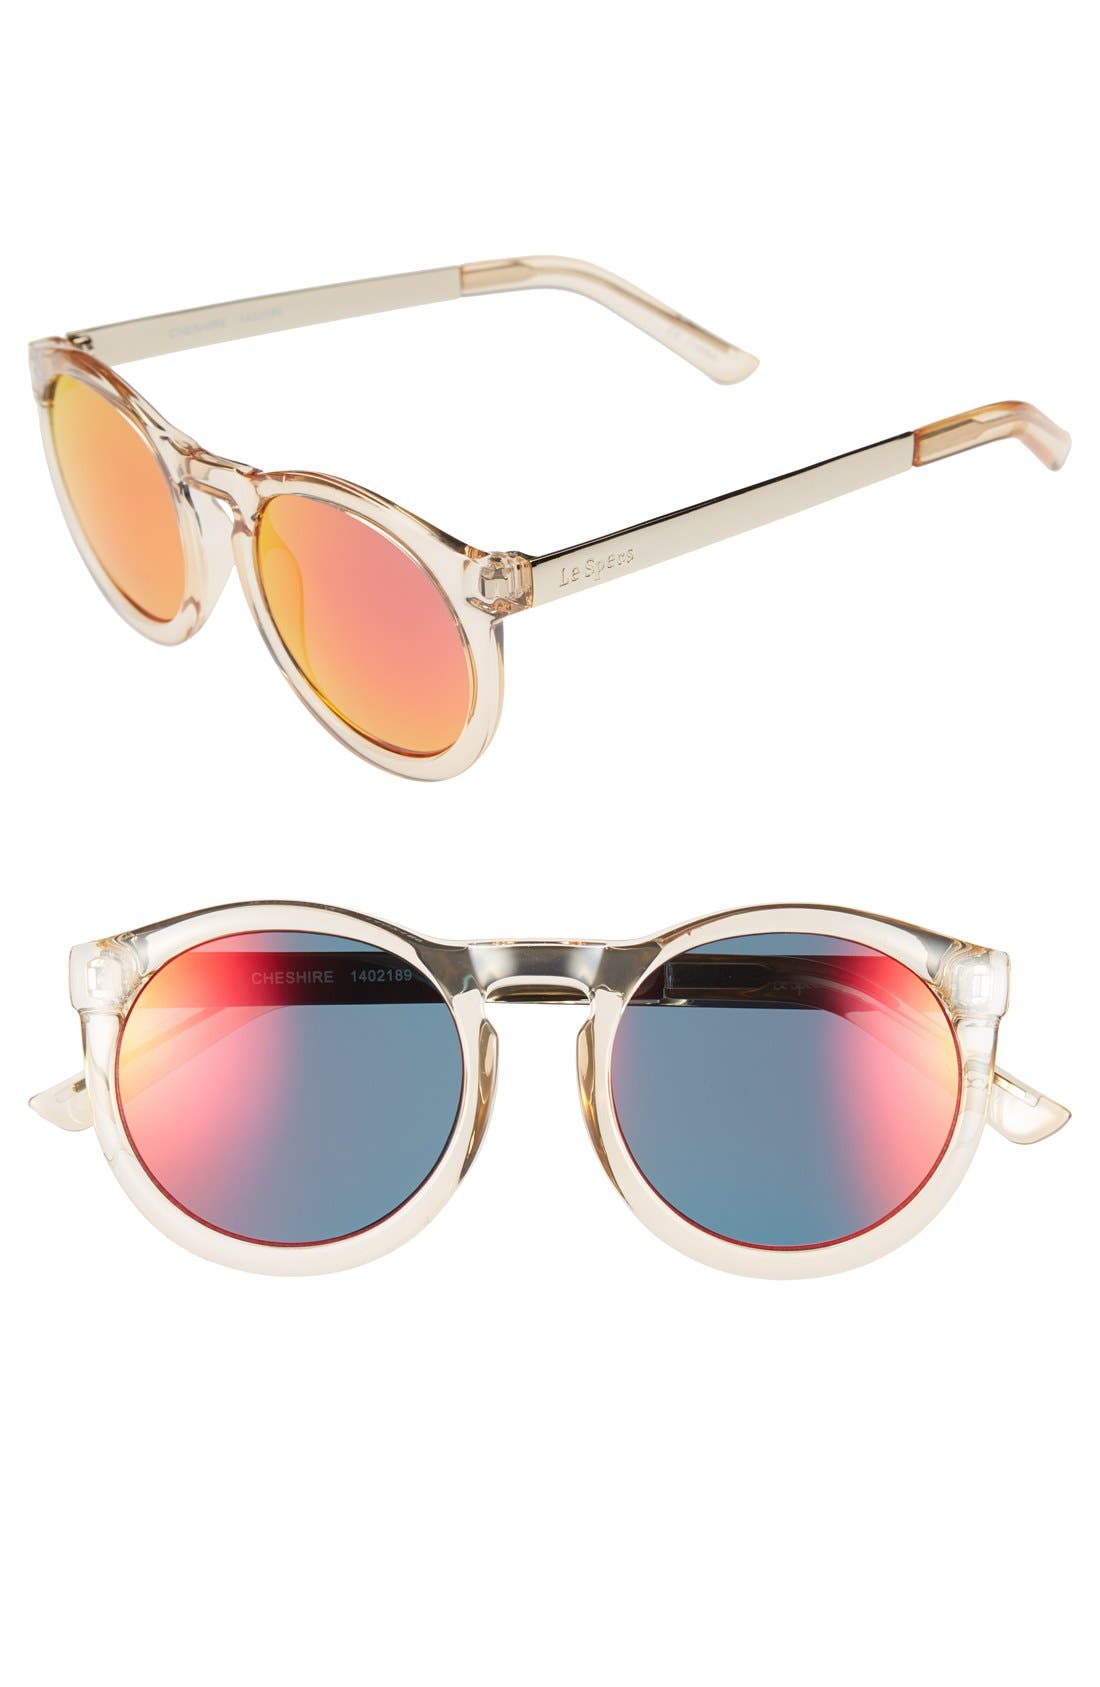 Main Image - Le Specs 'Chesire' Sunglasses